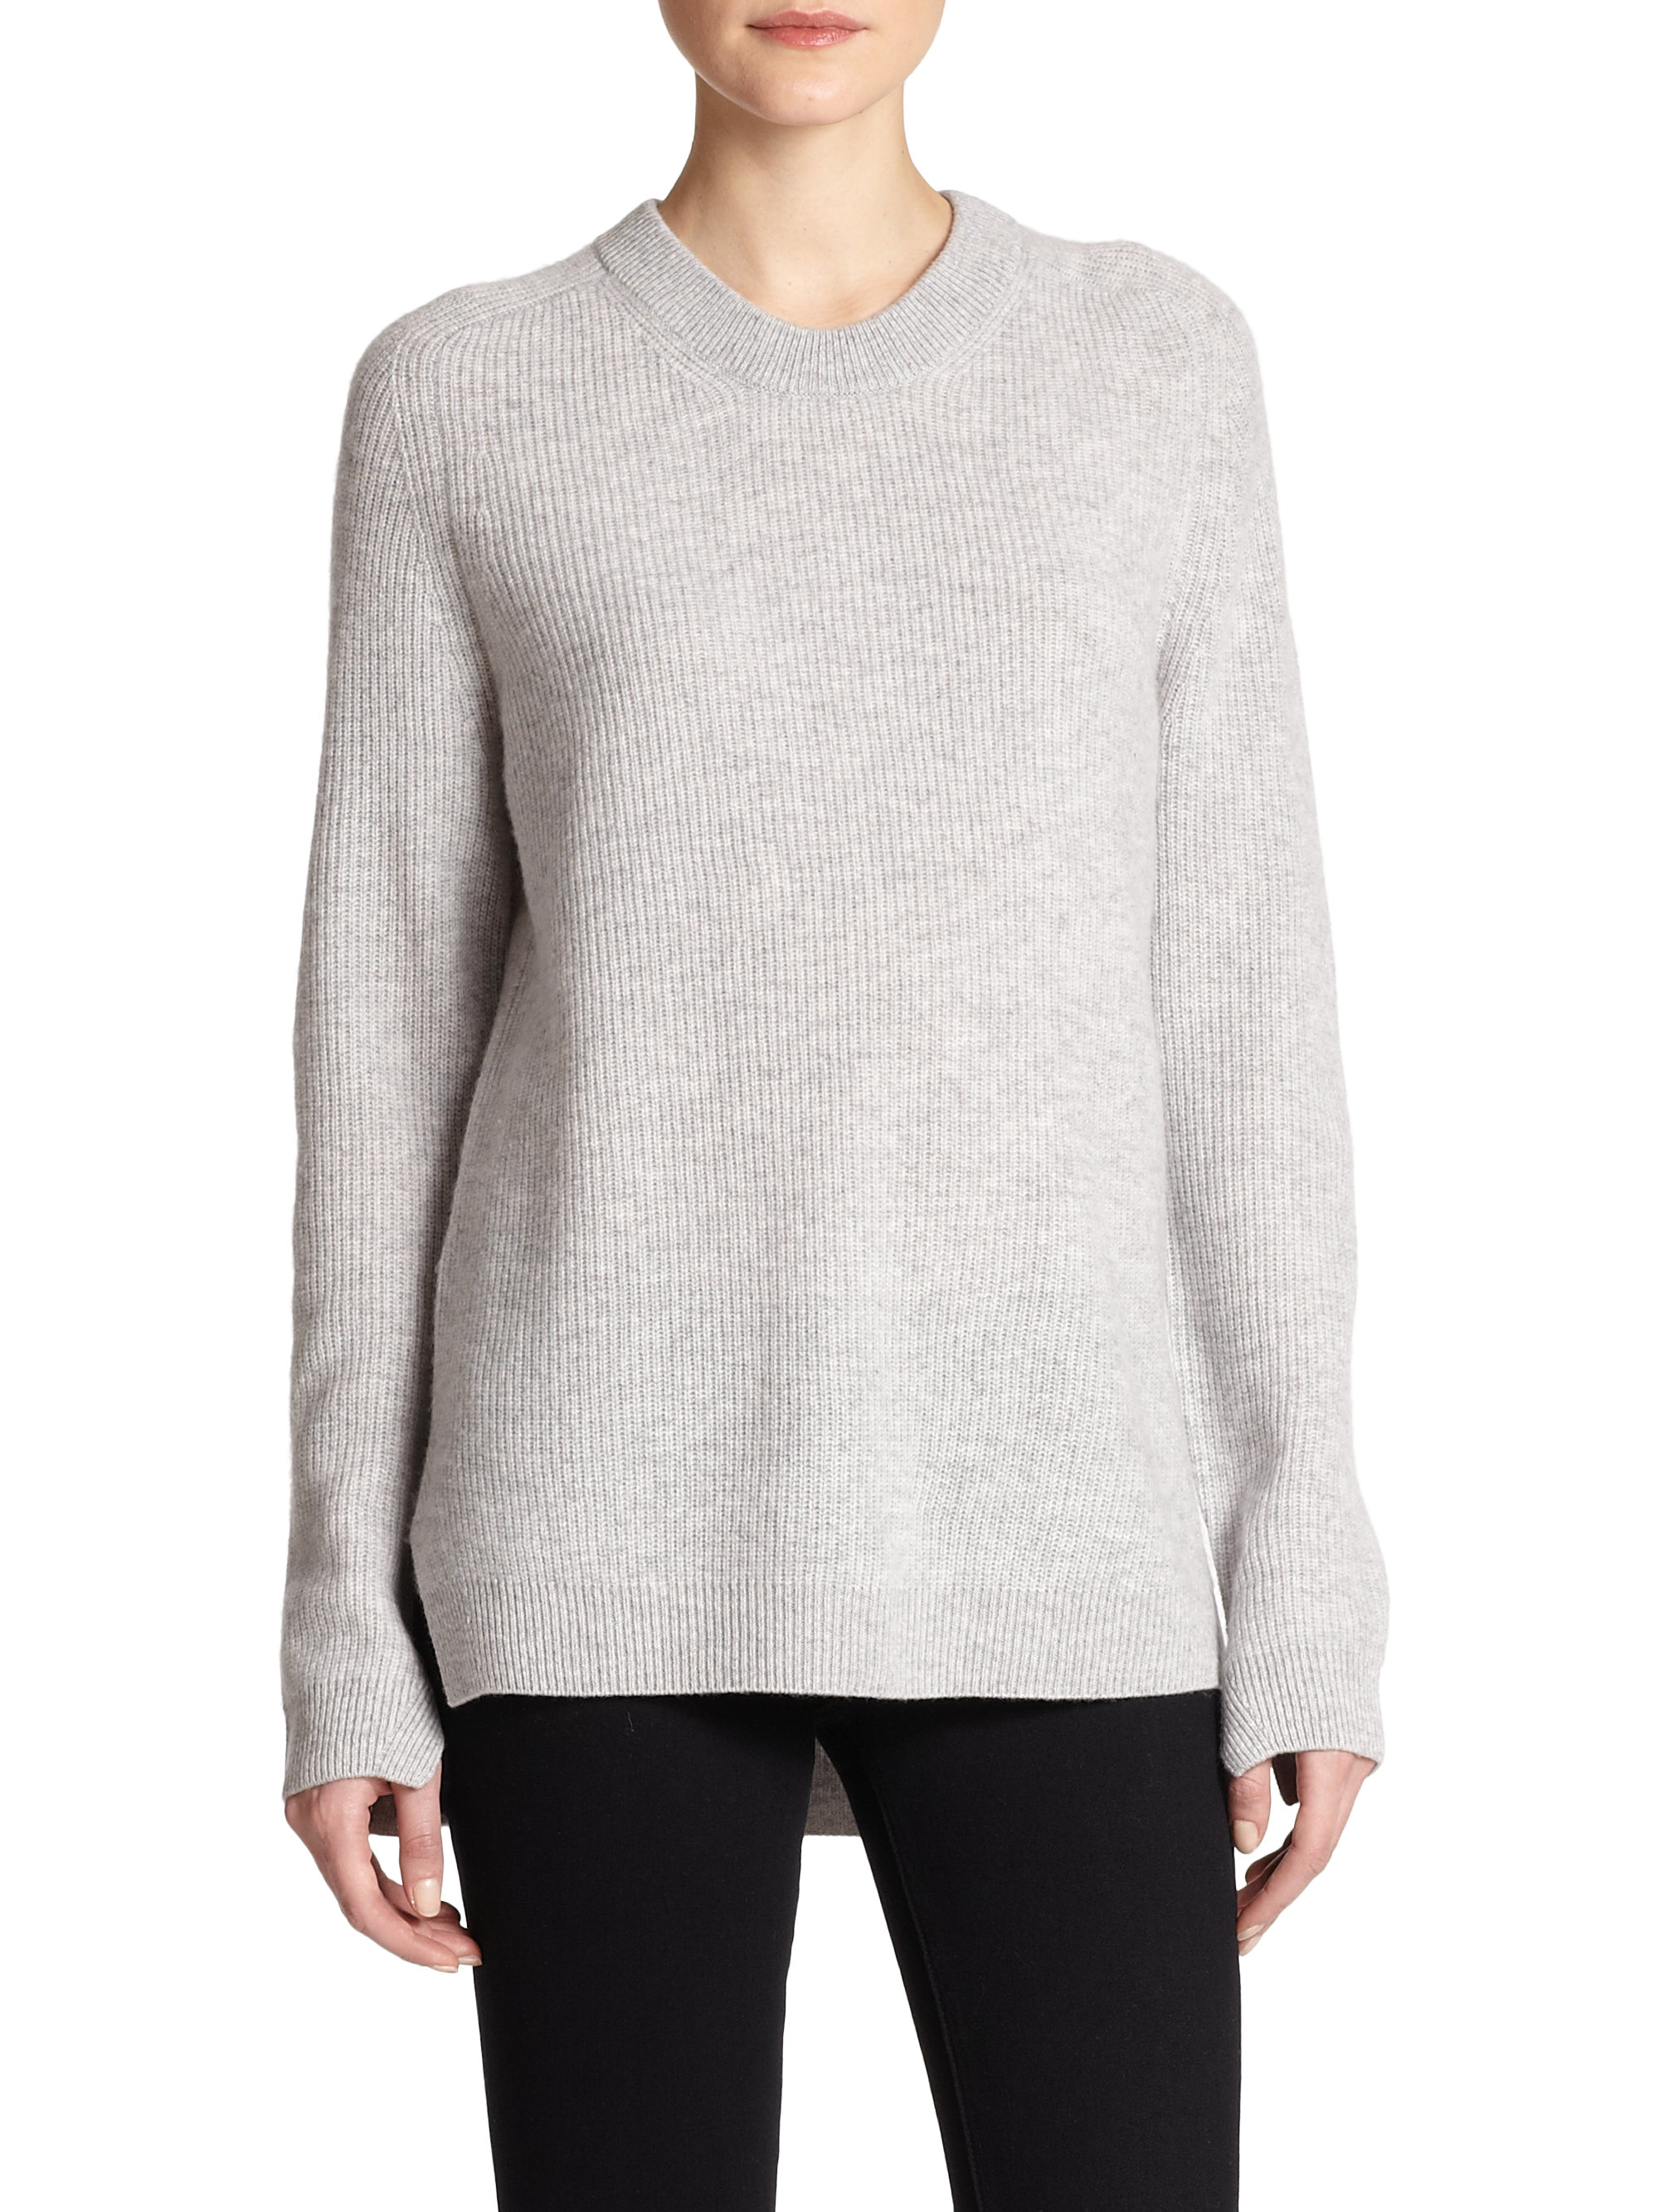 Rag & bone Valentina Cashmere Sweater in Gray | Lyst